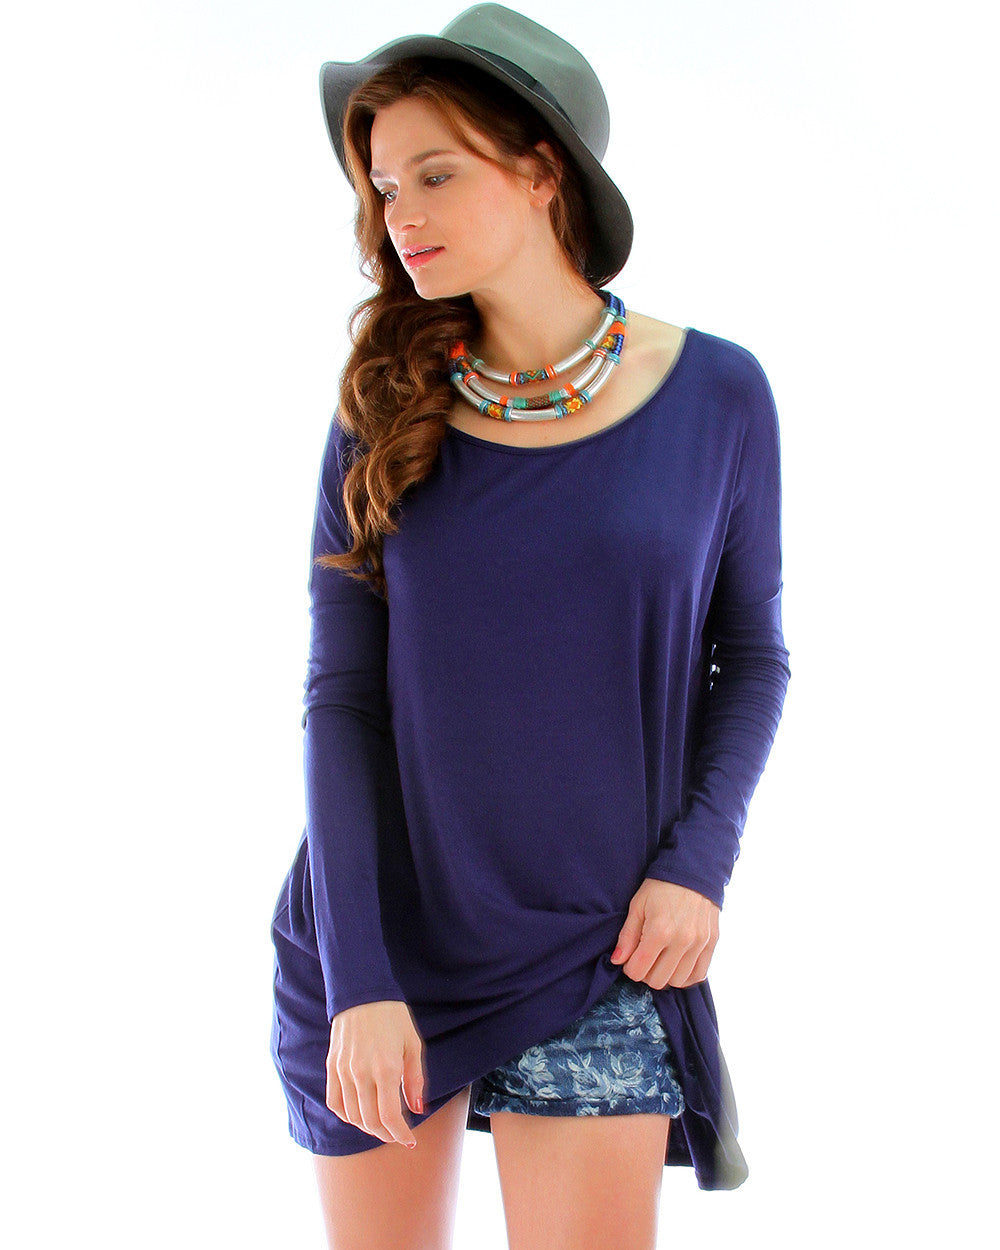 Over-Sized Long Sleeve Tunic Top In Navy